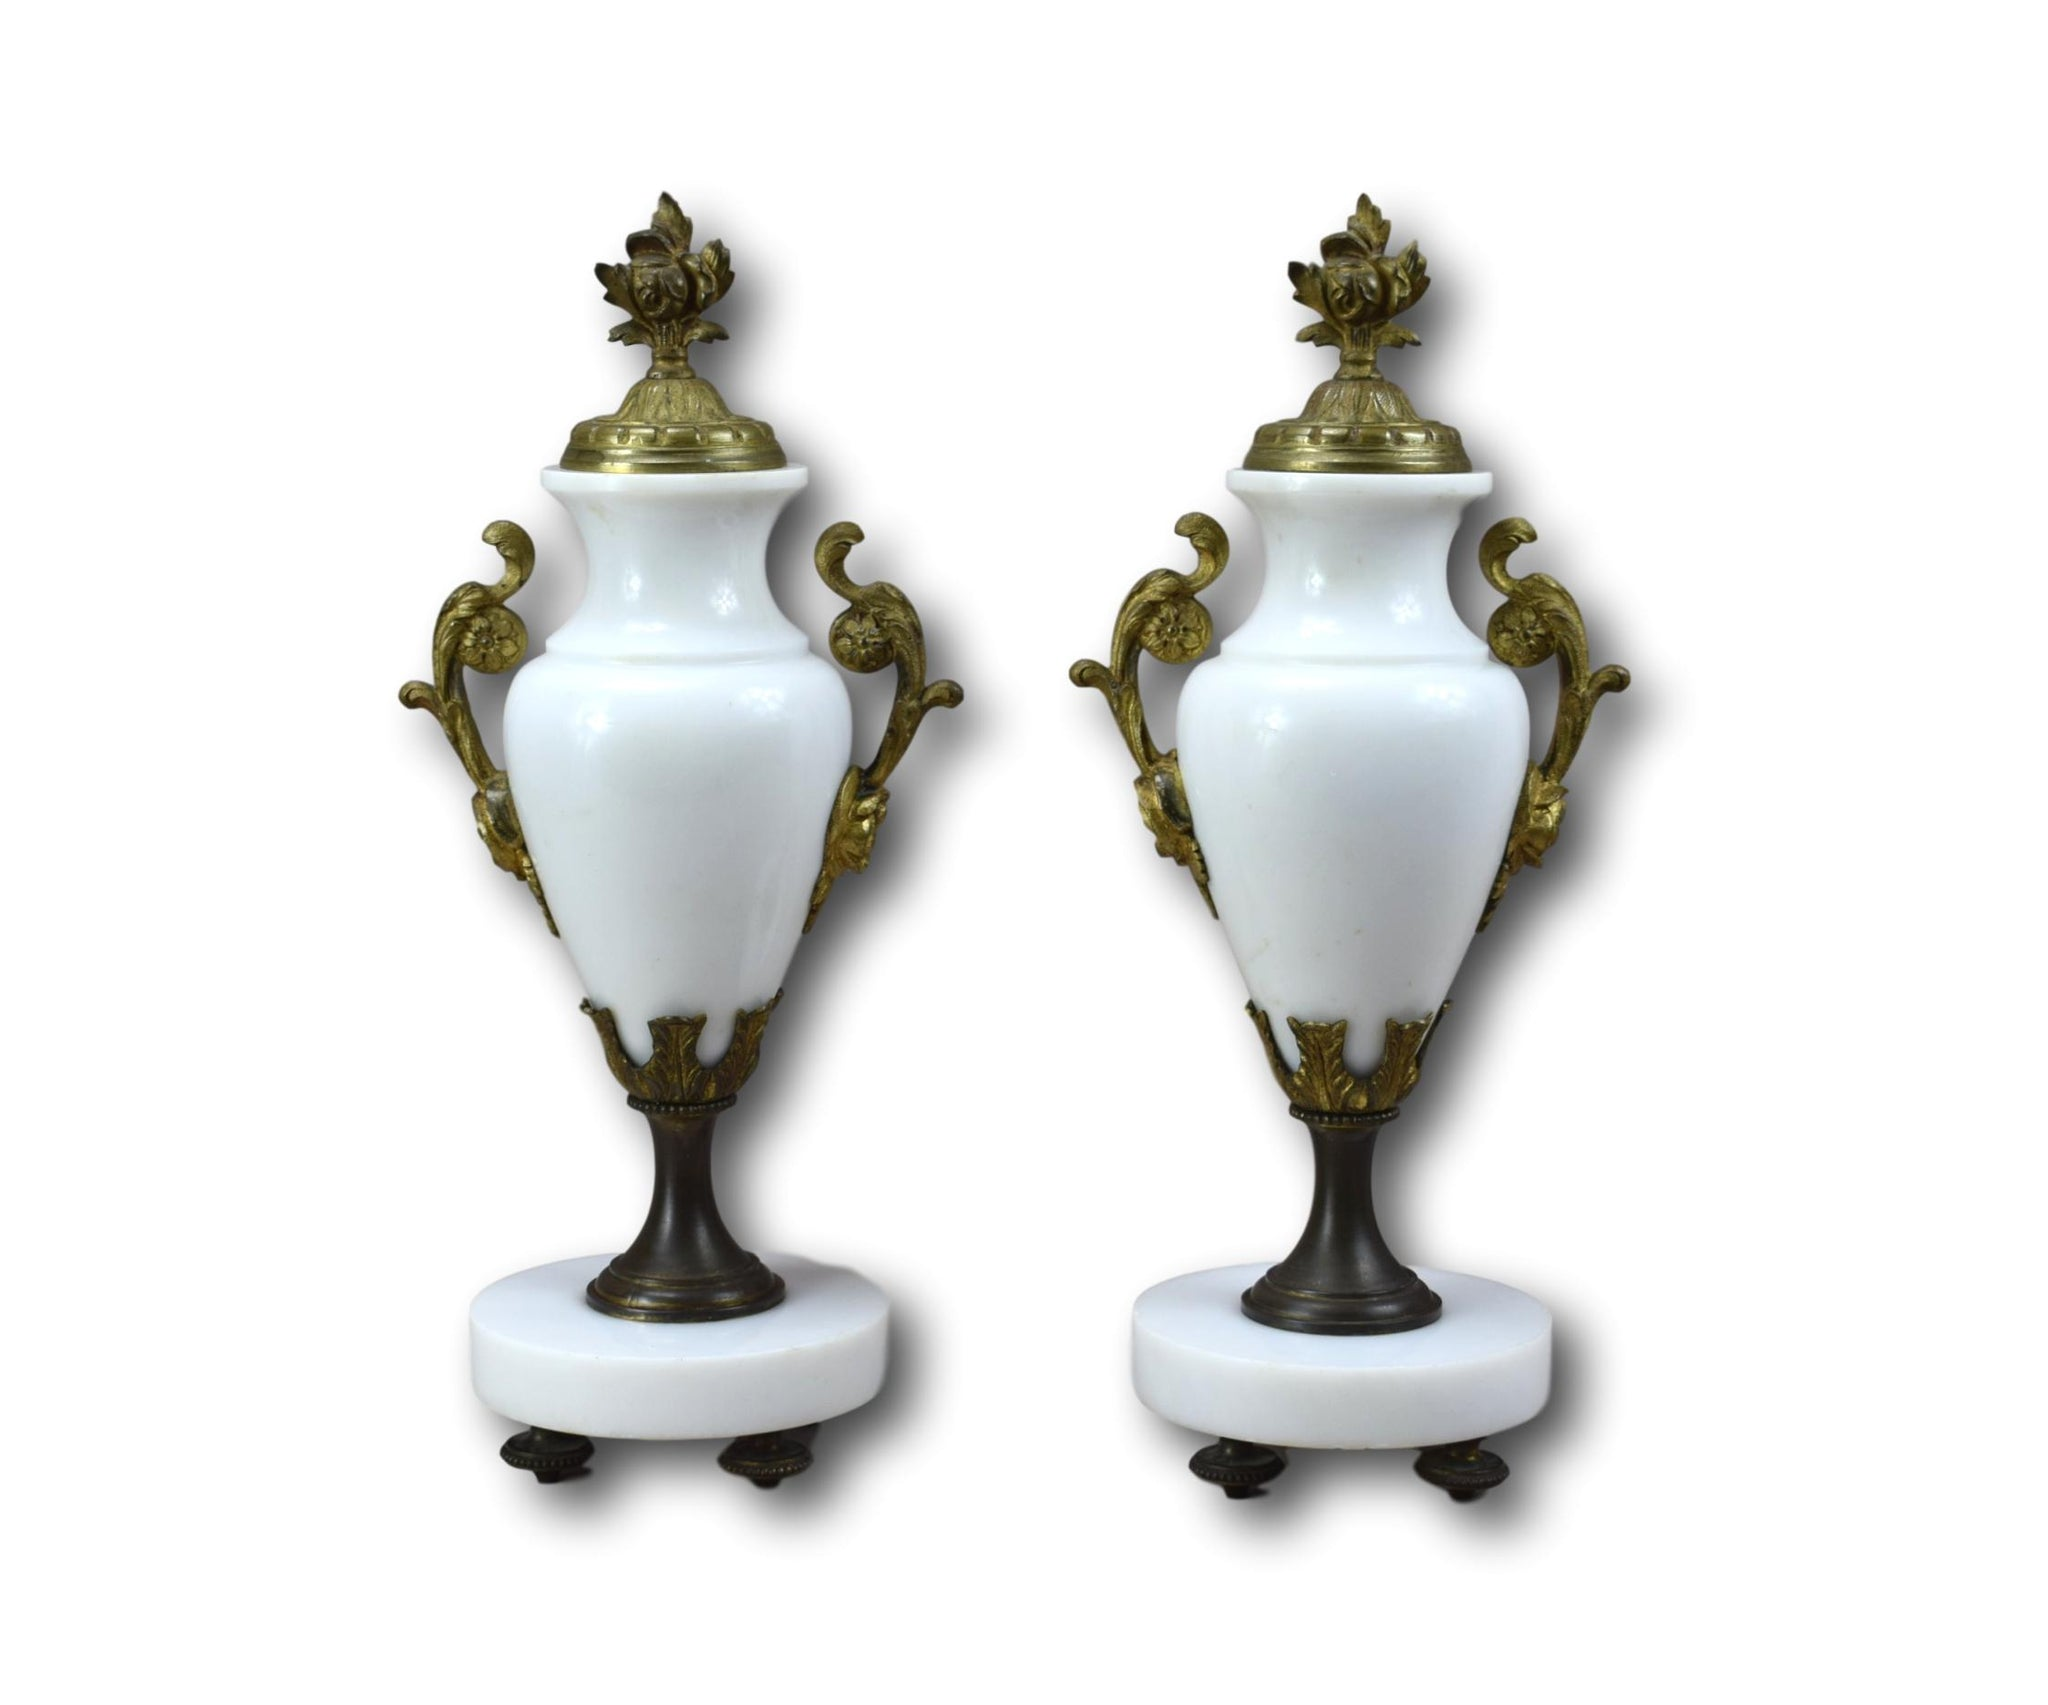 Marble Urns Vases - Charmantiques